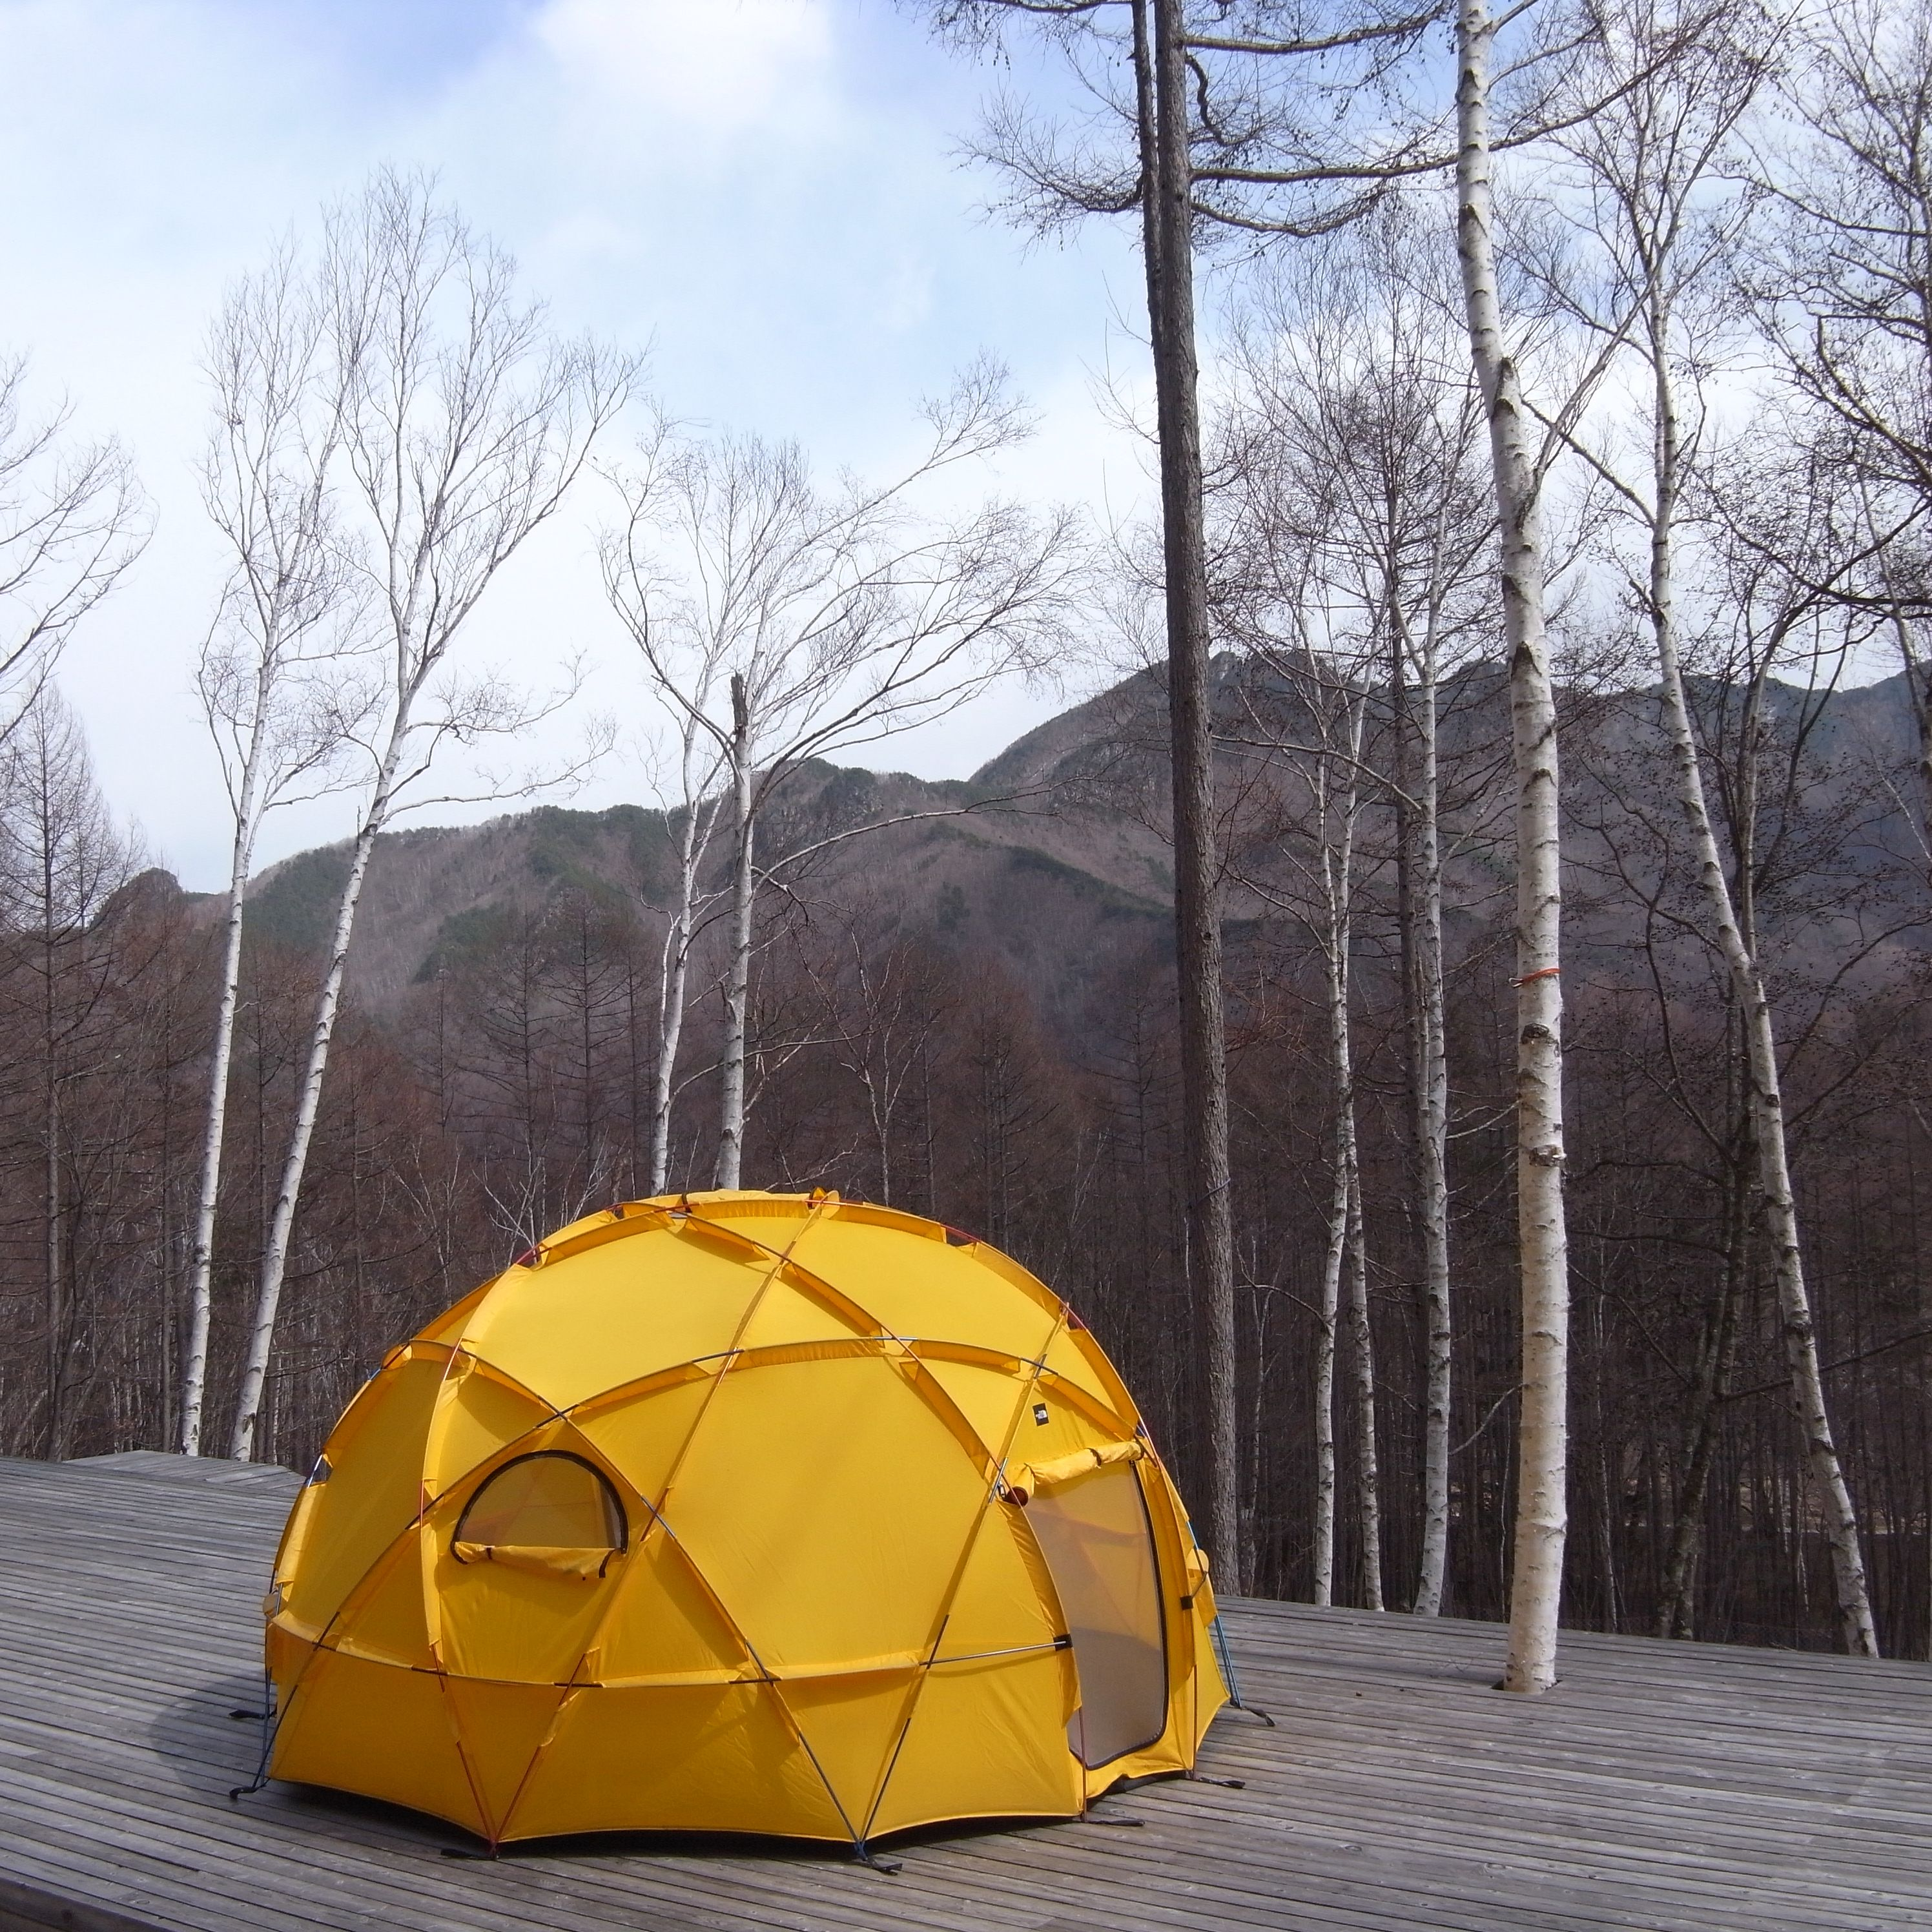 Geodesic Dome Tent & Geodesic Dome Tent | Soul Inspiration | Pinterest | Dome tent and ...